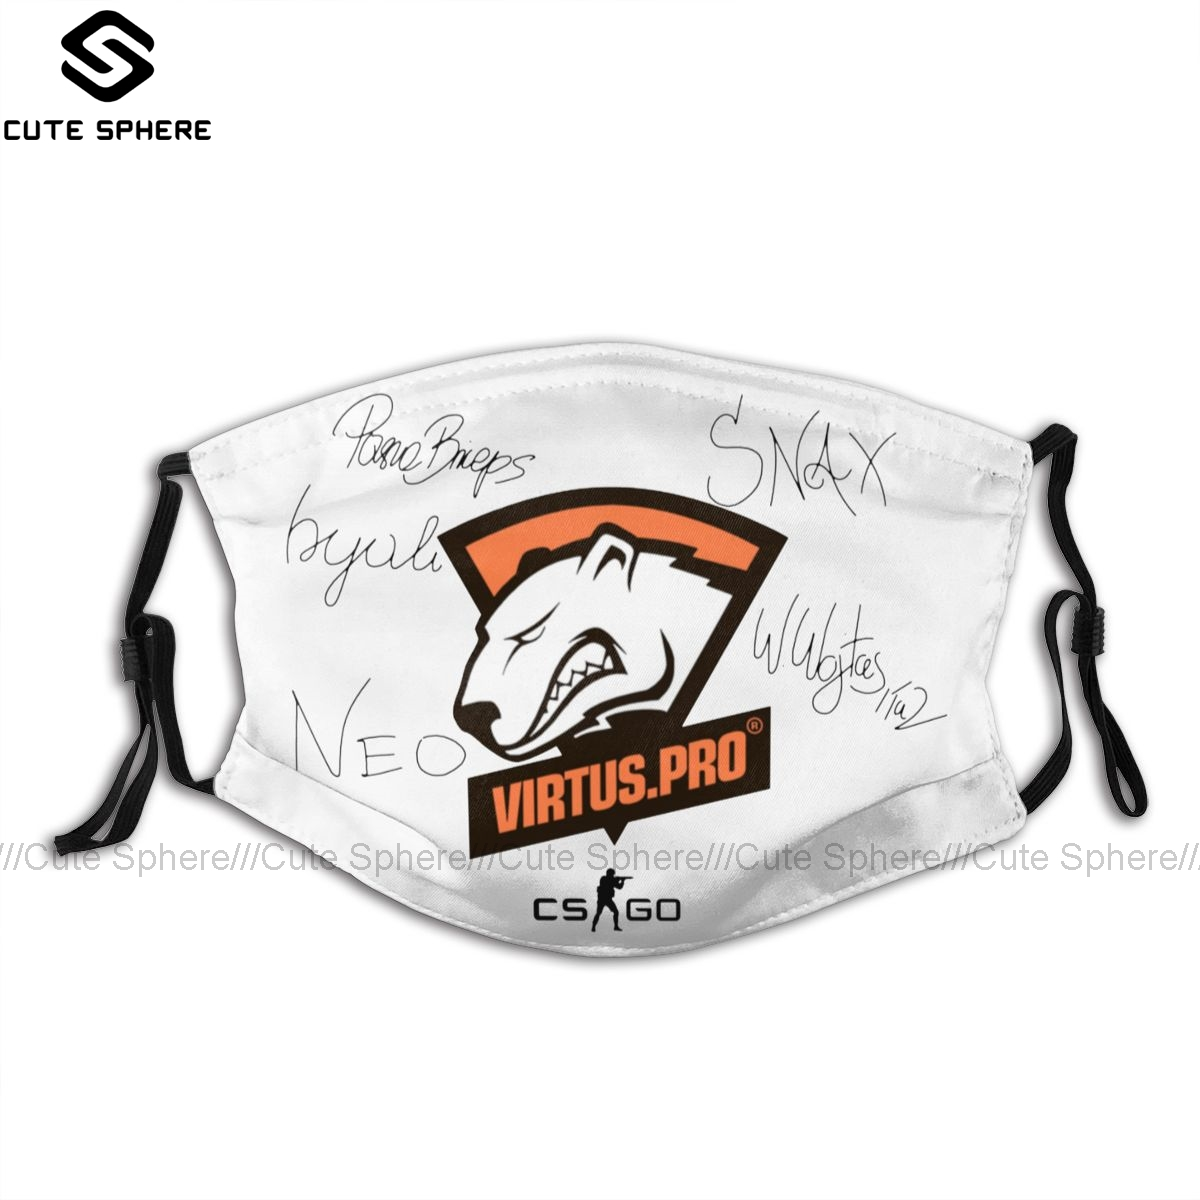 Virtus Pro Mouth Face Mask Virtus Pro Signed Players Facial Mask Funny Kawai With 2 Filters For Adult